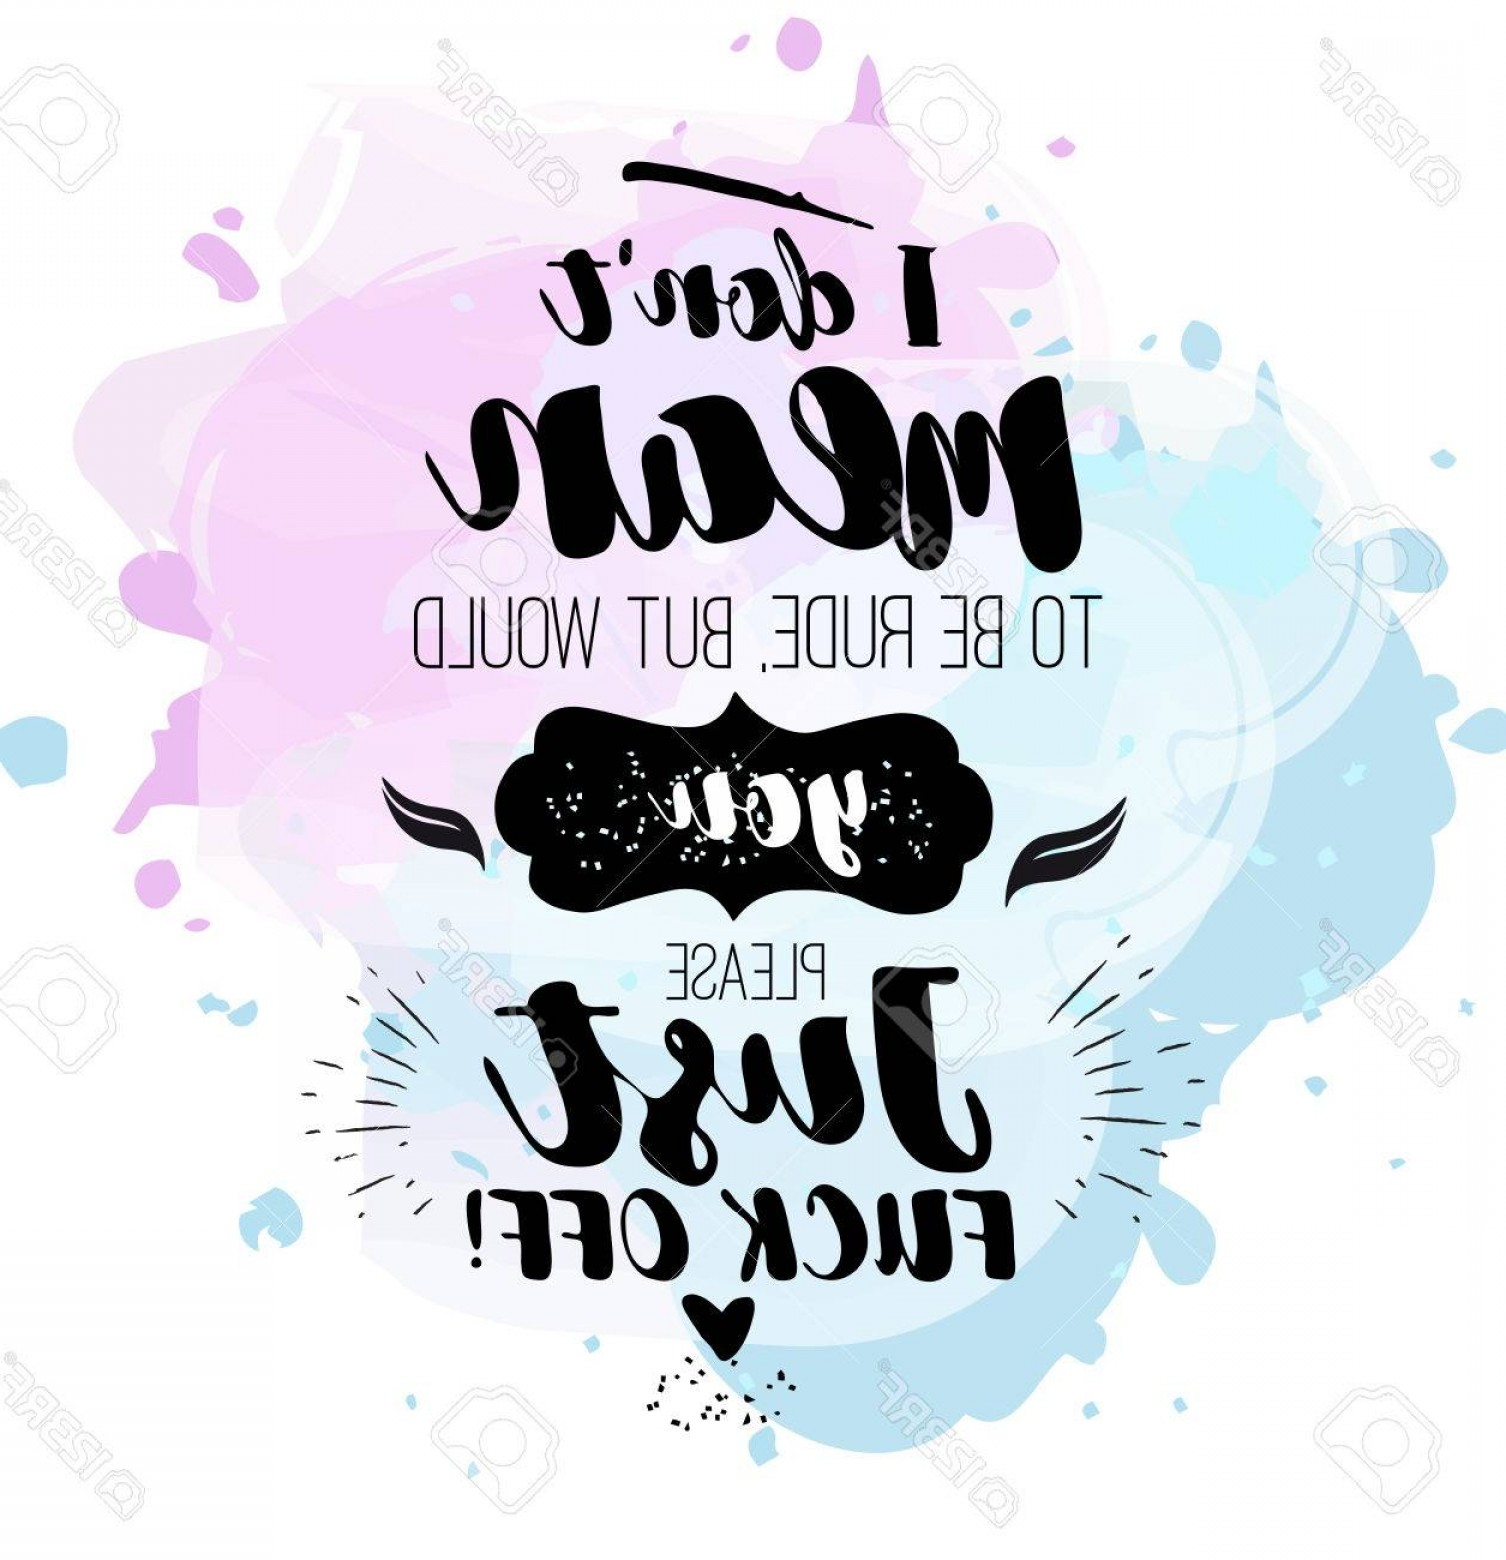 Vector Quotes: Photostock Vector Vector Phrase To Print On Posters And T Shirts Design Quotes For Social Media And Web Sites